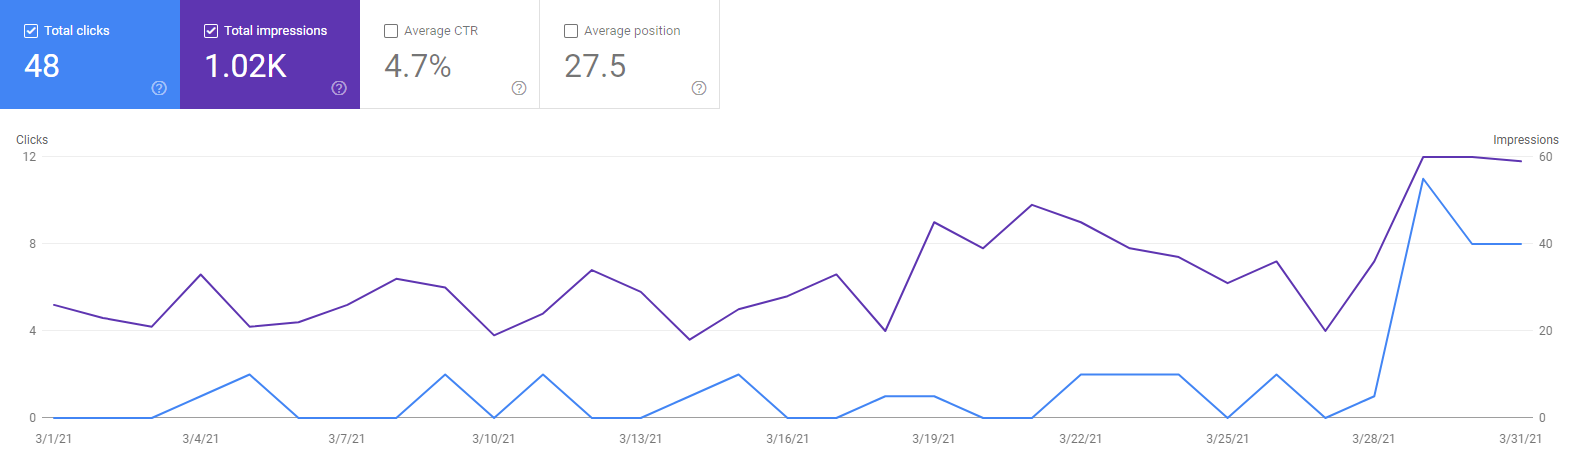 Niche site nr1 stats for March 2021